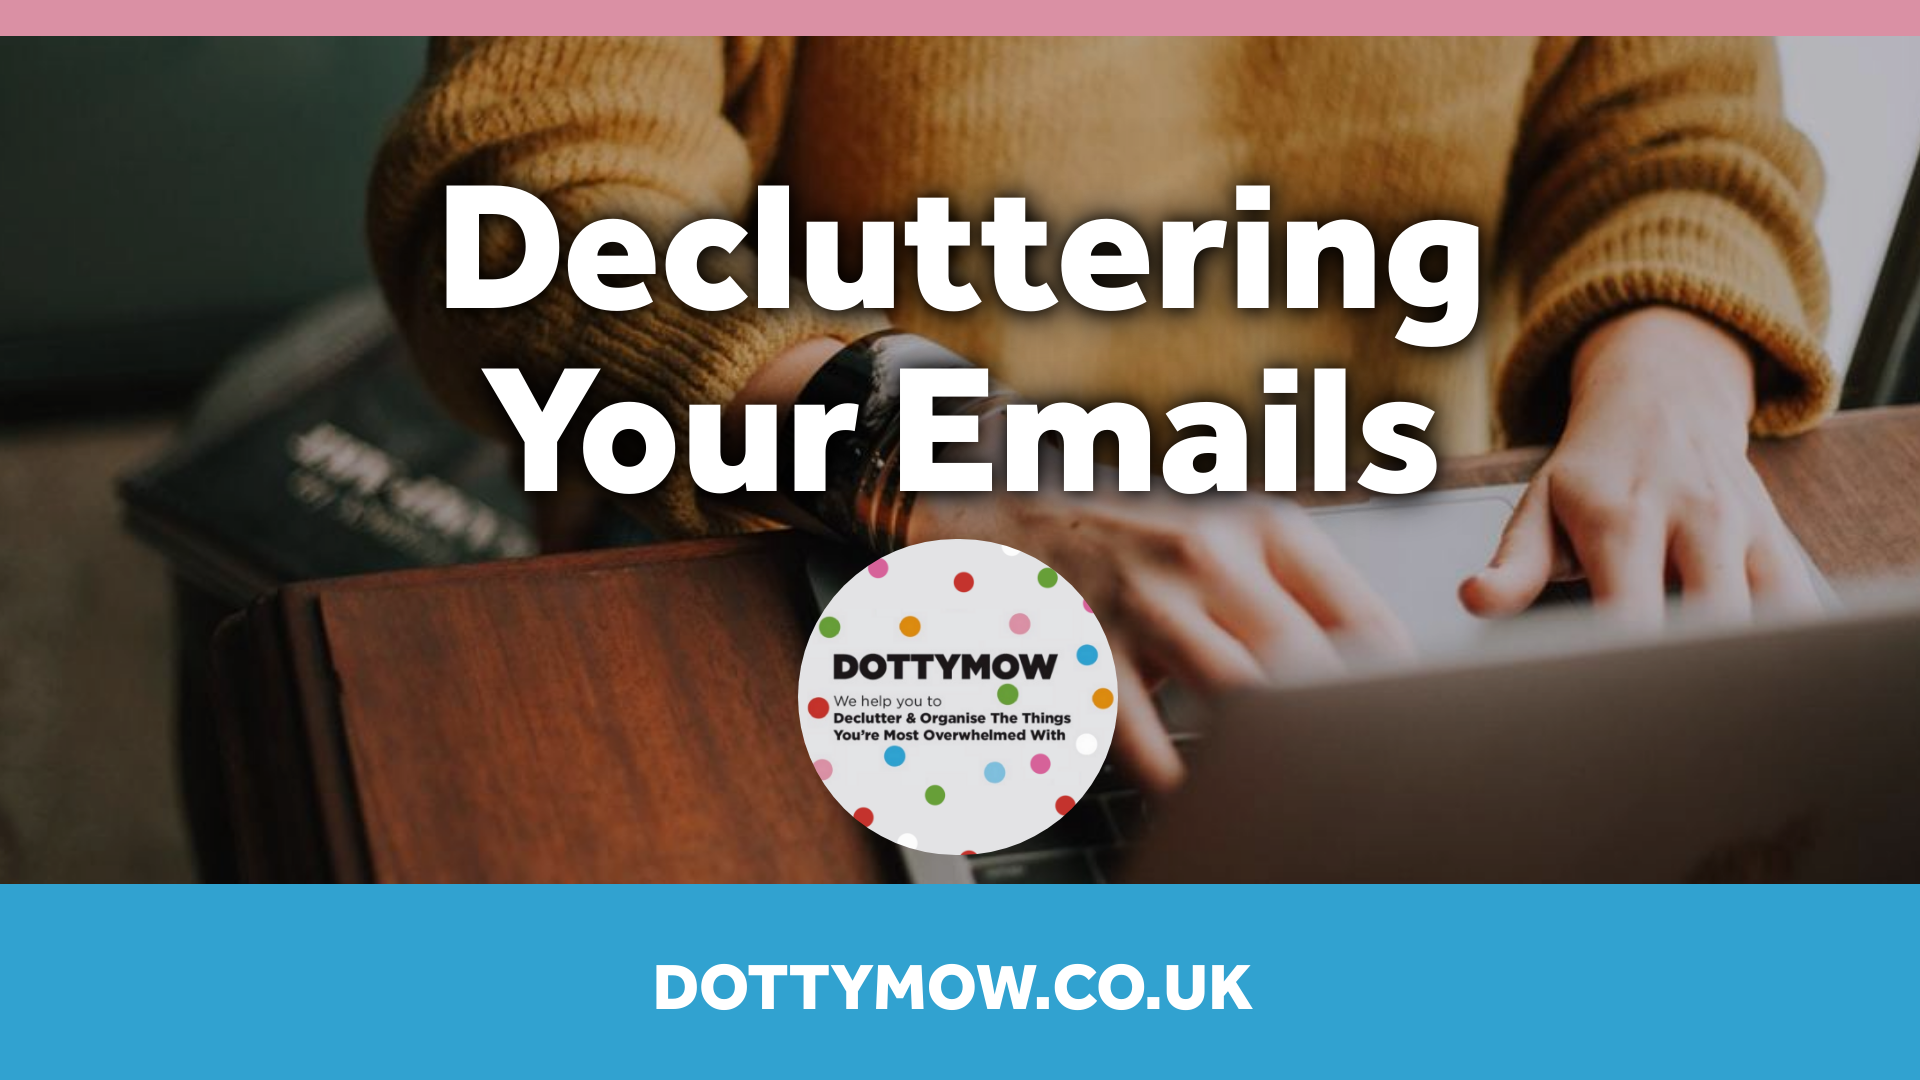 Decluttering Emails, Decluttering and organising services